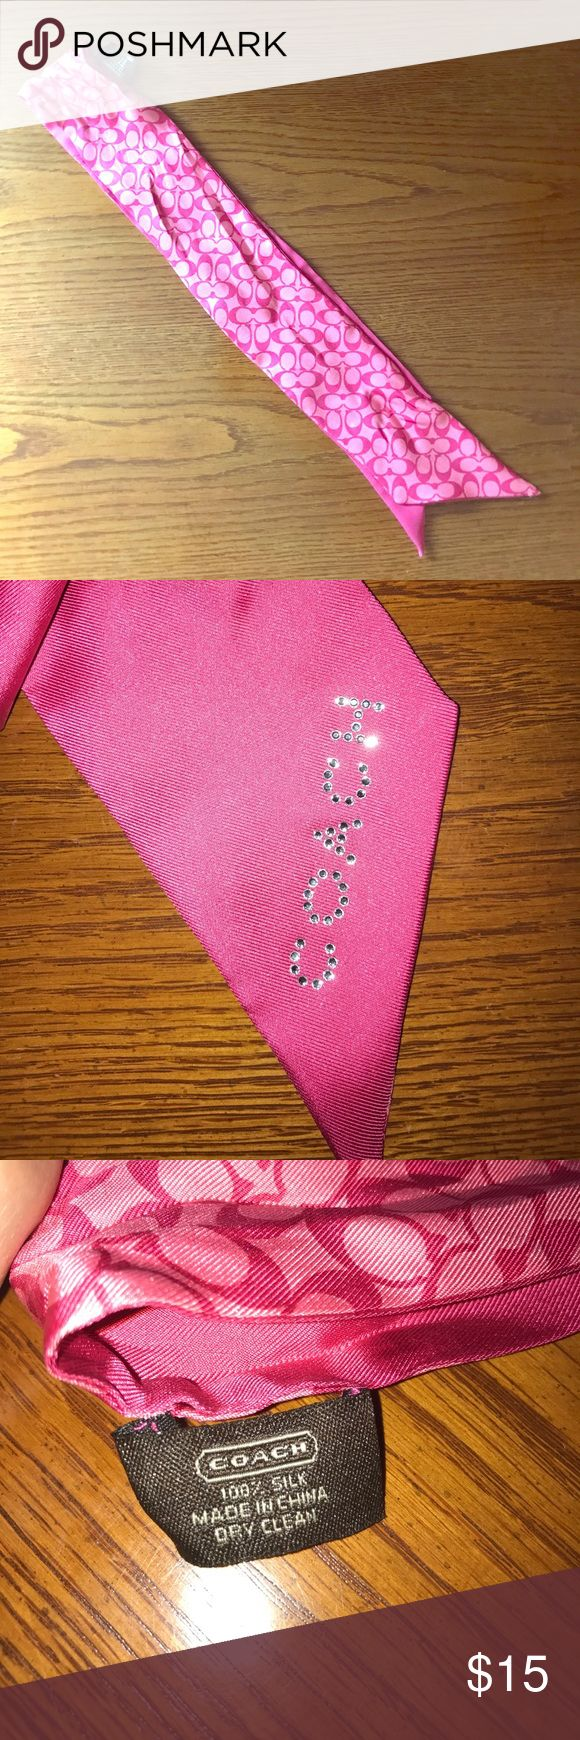 Coach Silk Scarf This Coach Scarf is 100% silk and features the Coach name written in rhinestones. Looks great tied to an existing Coach bag, but can also be worn in one's hair. Coach Accessories Scarves & Wraps